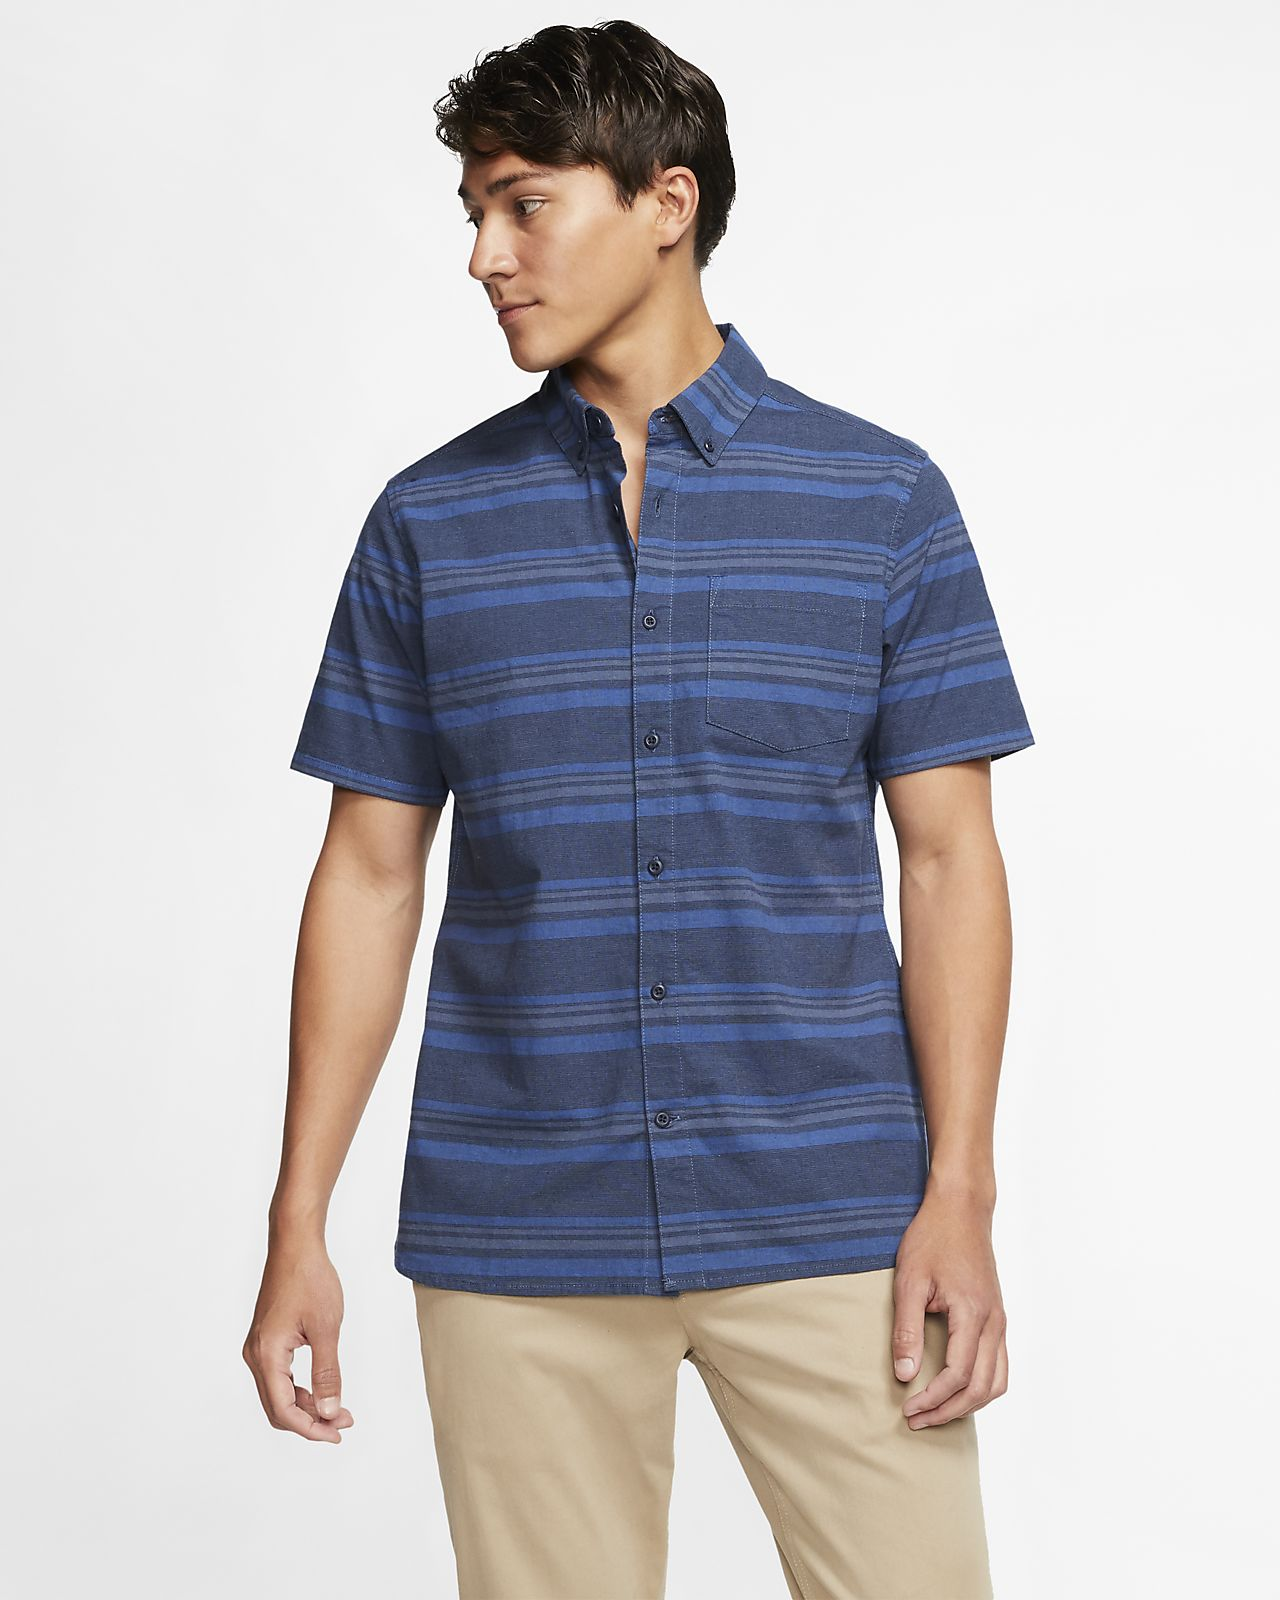 Hurley Outlaw Stretch Men's Short-Sleeve Top